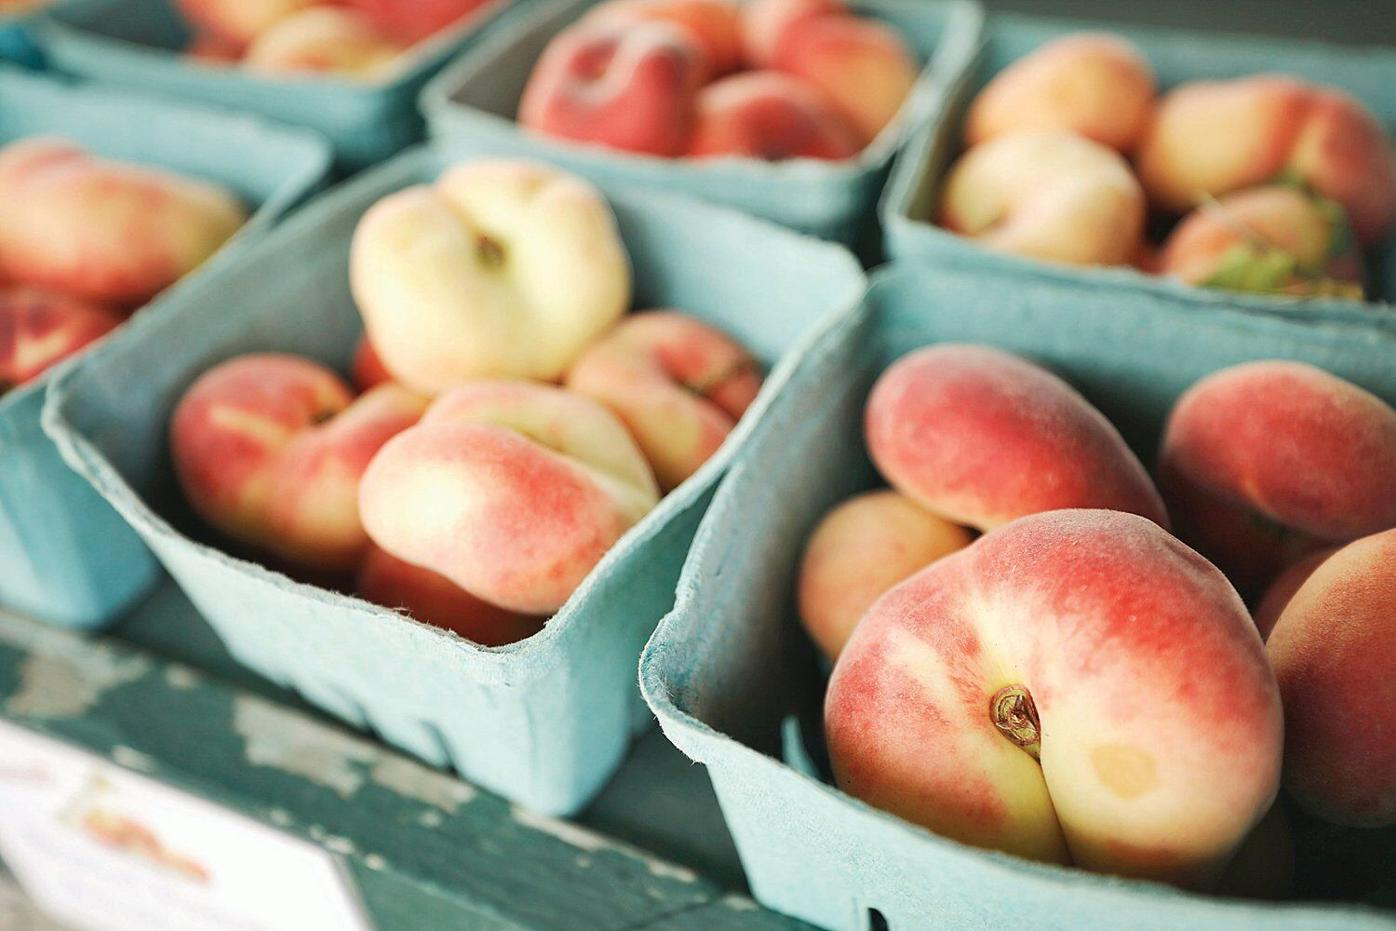 Latest food fad? Donut peaches bring a sweet note to summer